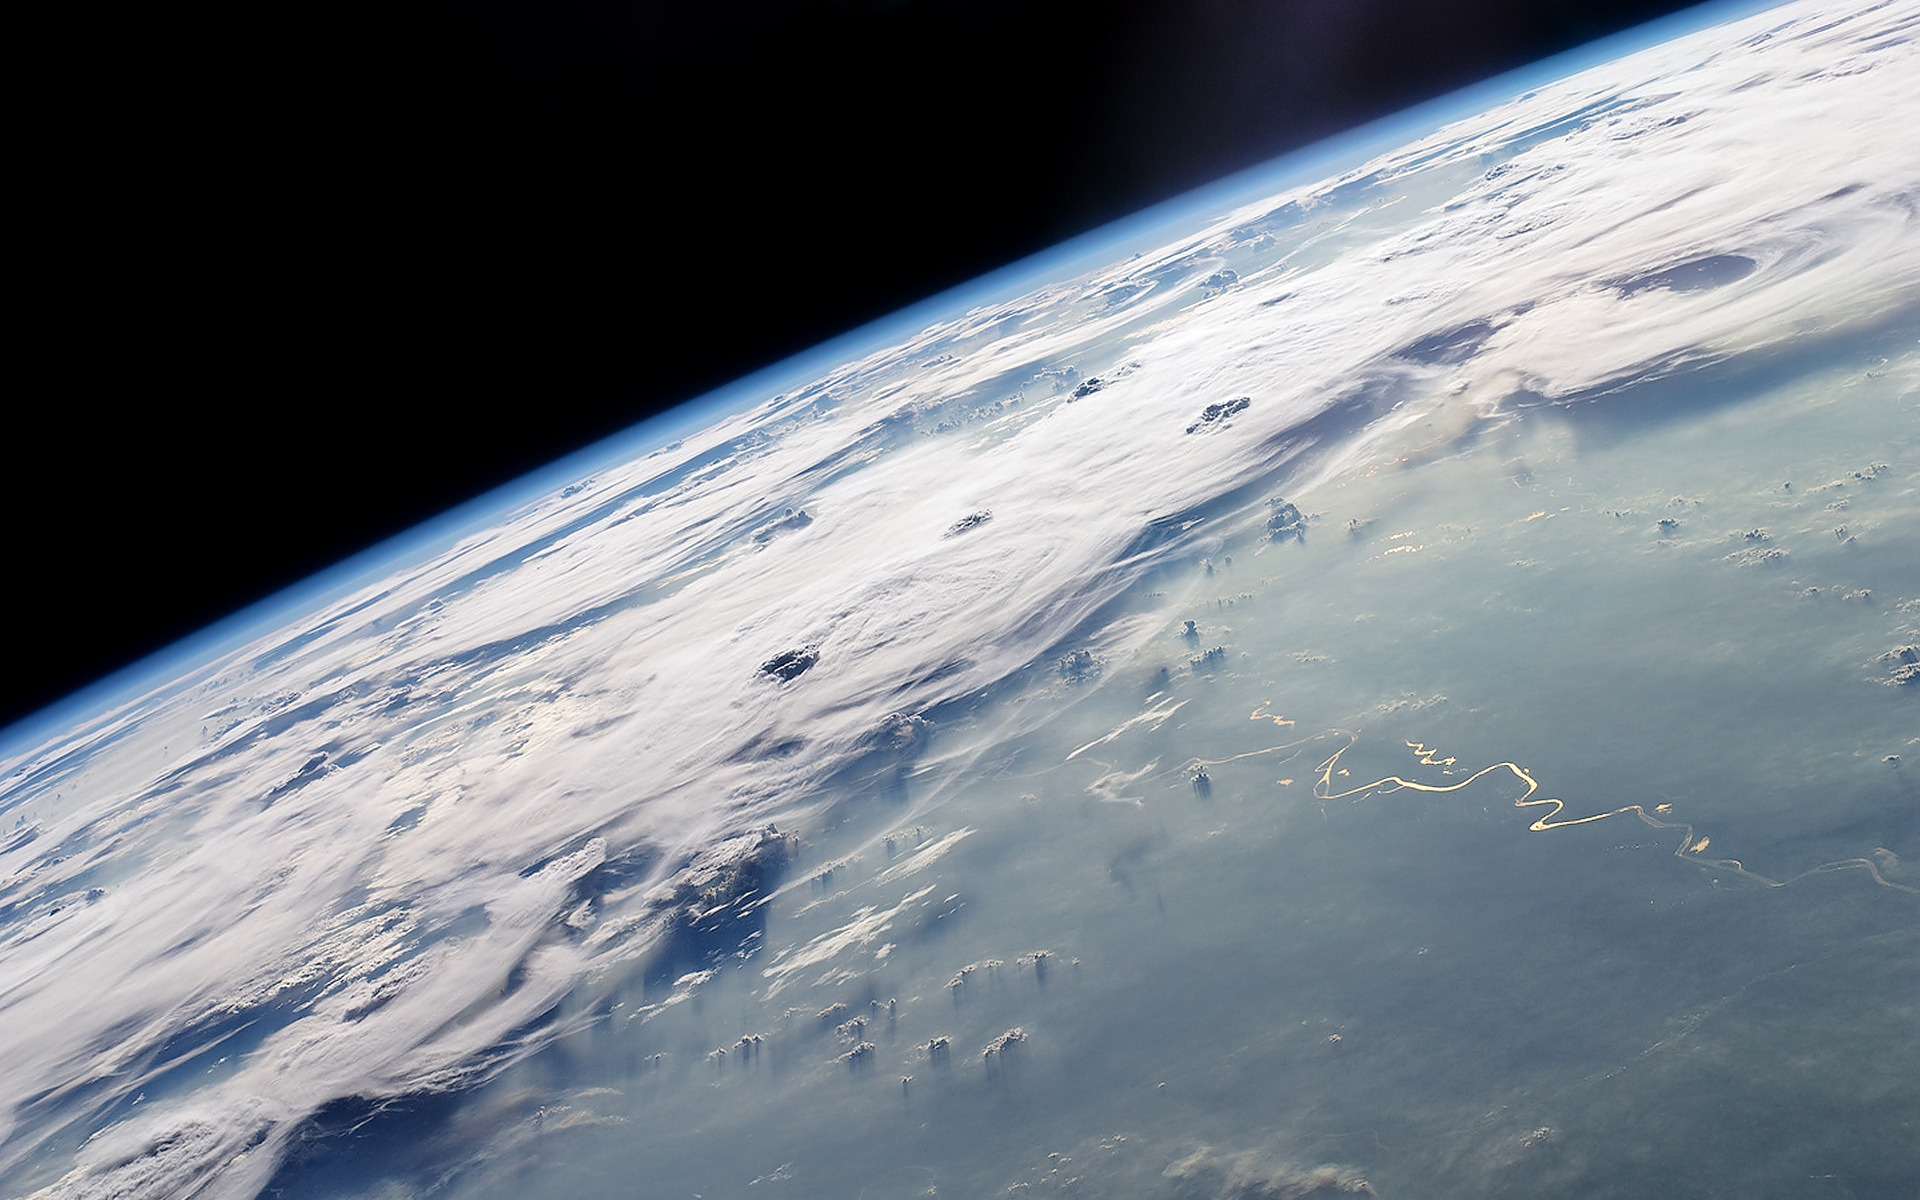 Earth From Space Wallpaper wallpaper.